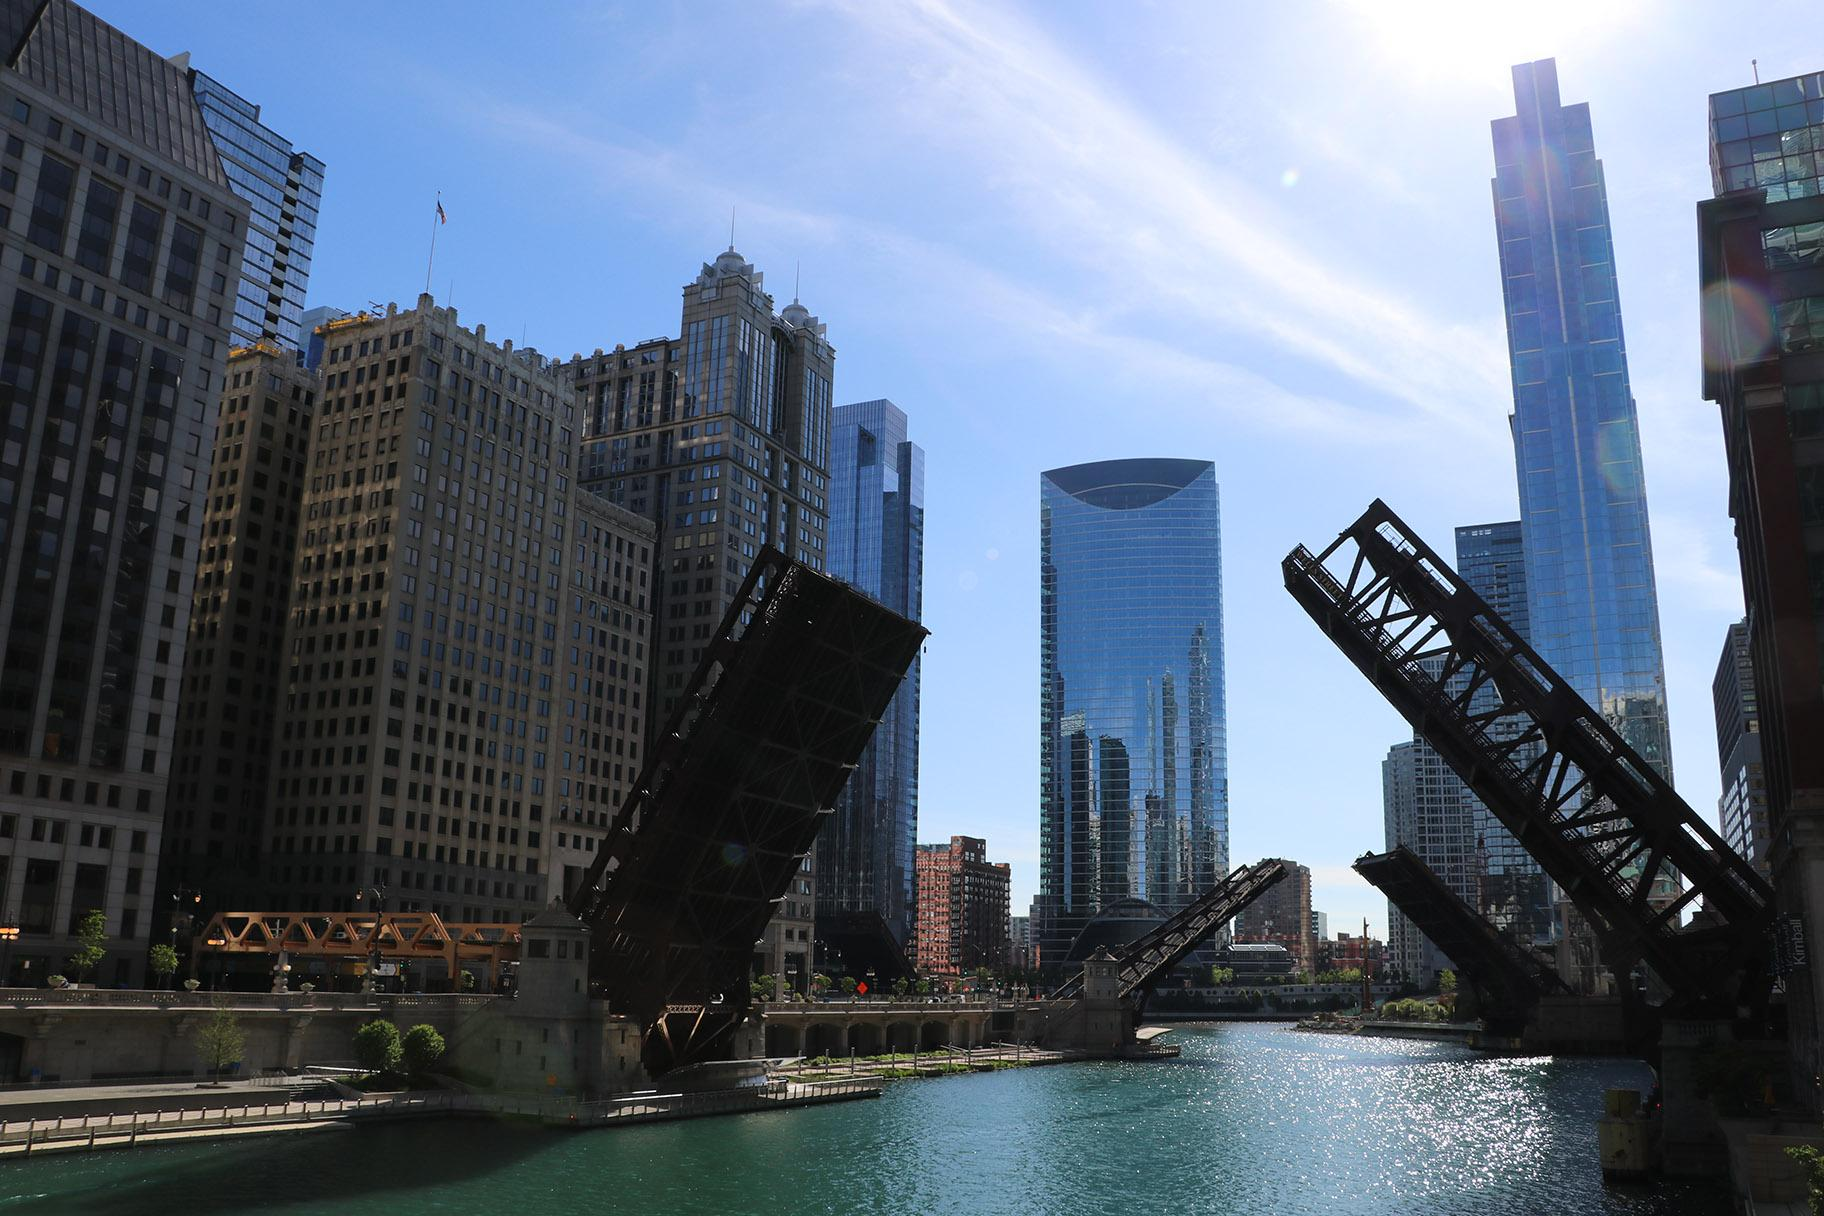 Most of the drawbridges spanning the Chicago River were lifted, presumably to control crowds, during protests Sunday. (Evan Garcia / WTTW News)